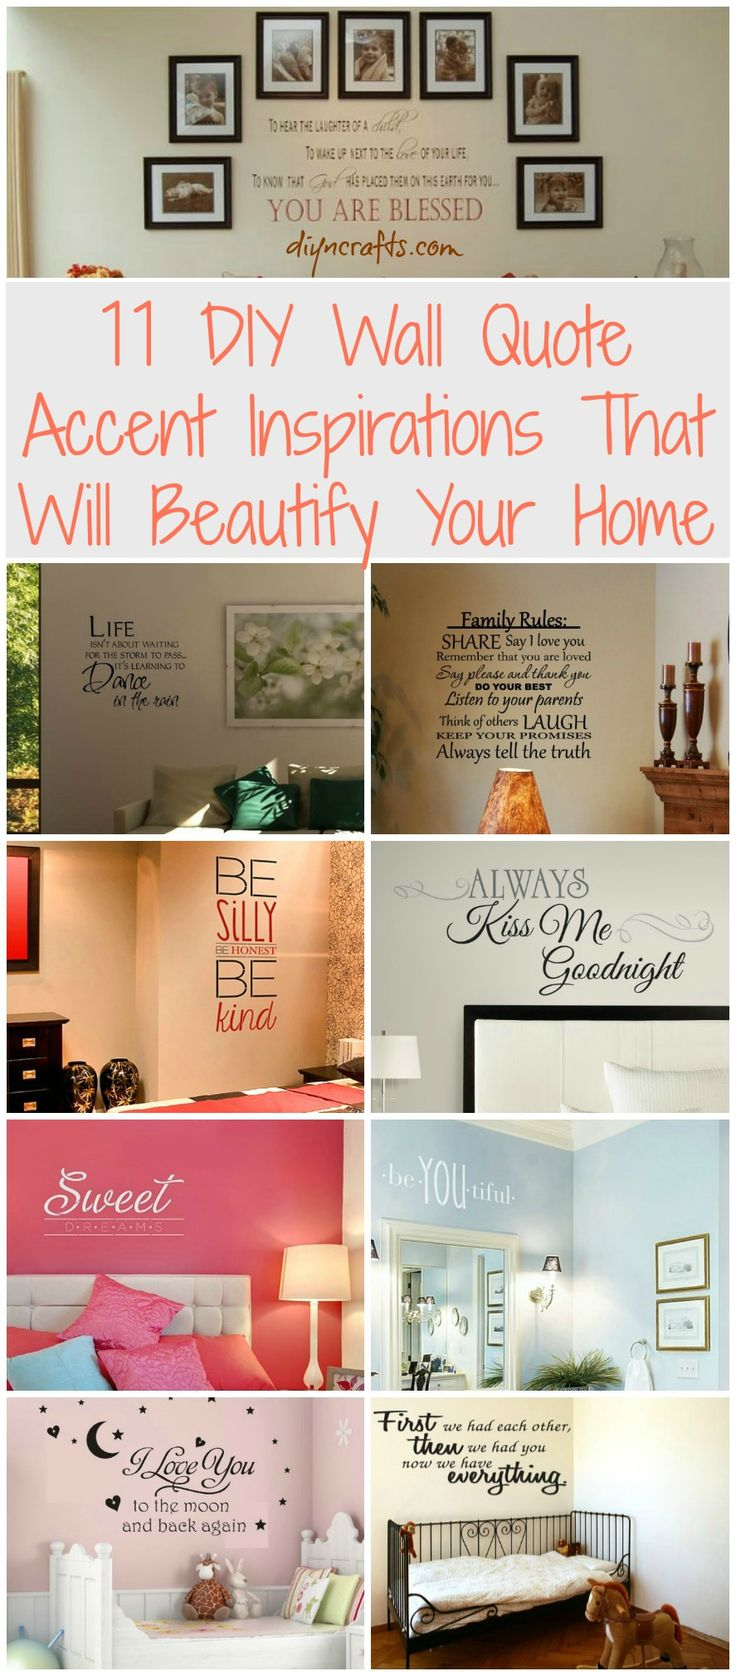 11 DIY Wall Quote Accent Inspirations That Will Beautify Your Home - DIY &...